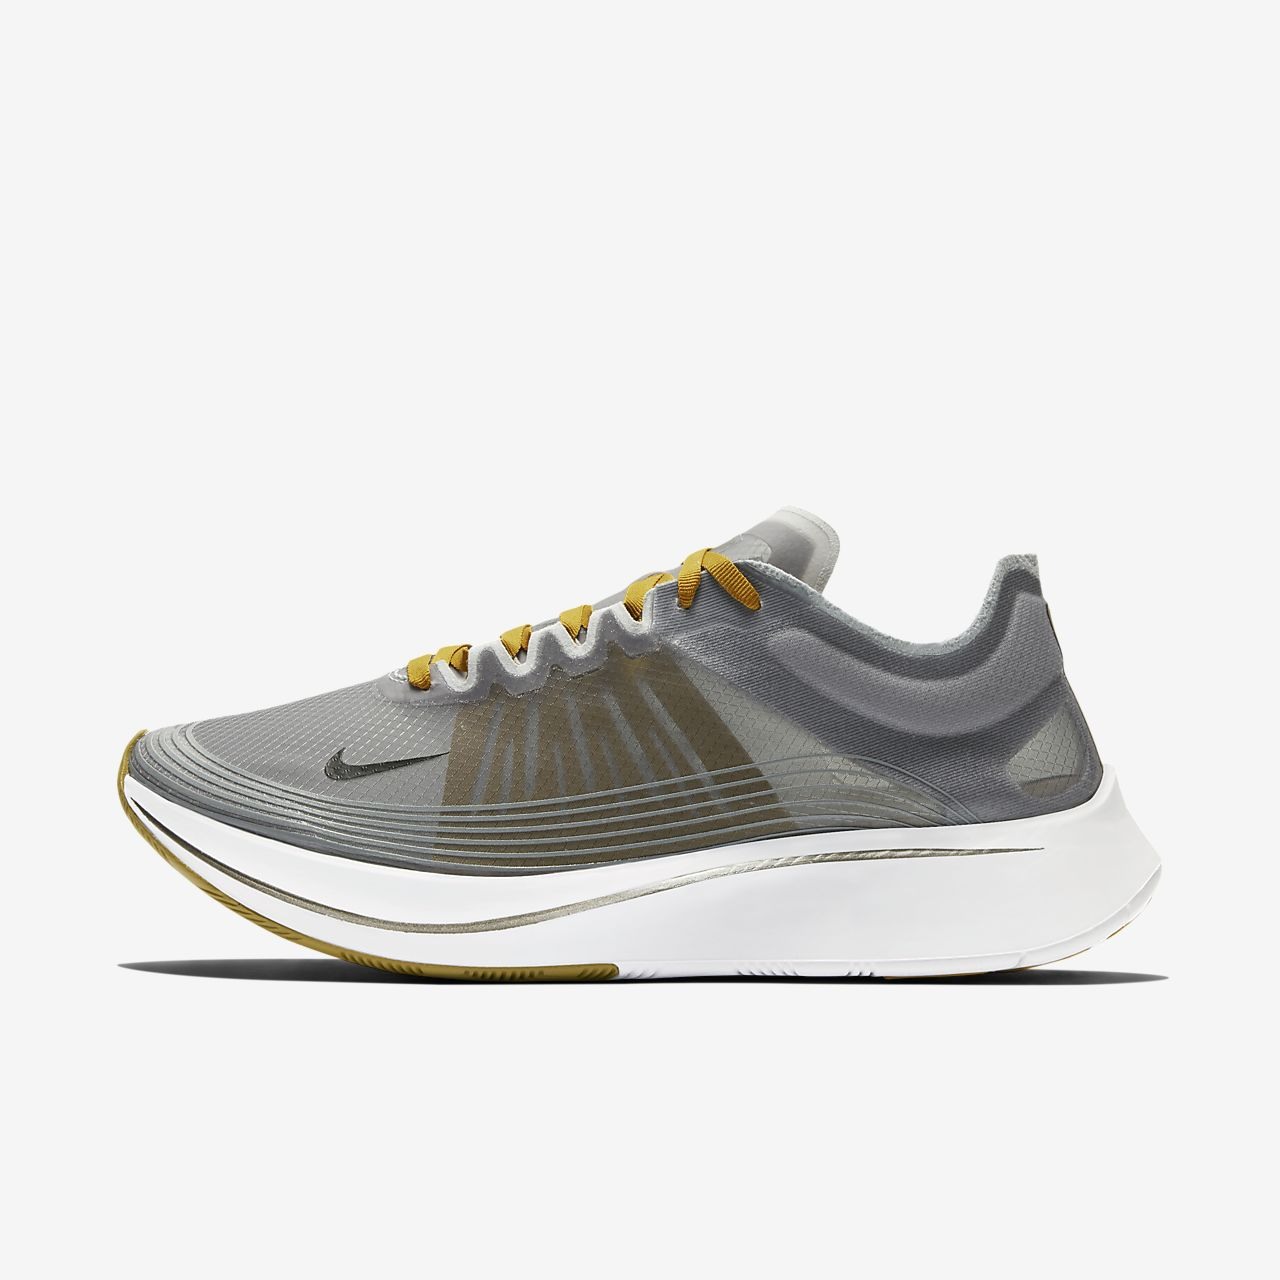 3d279bc8c7c Nike Zoom Fly SP Running Shoe. Nike.com CA